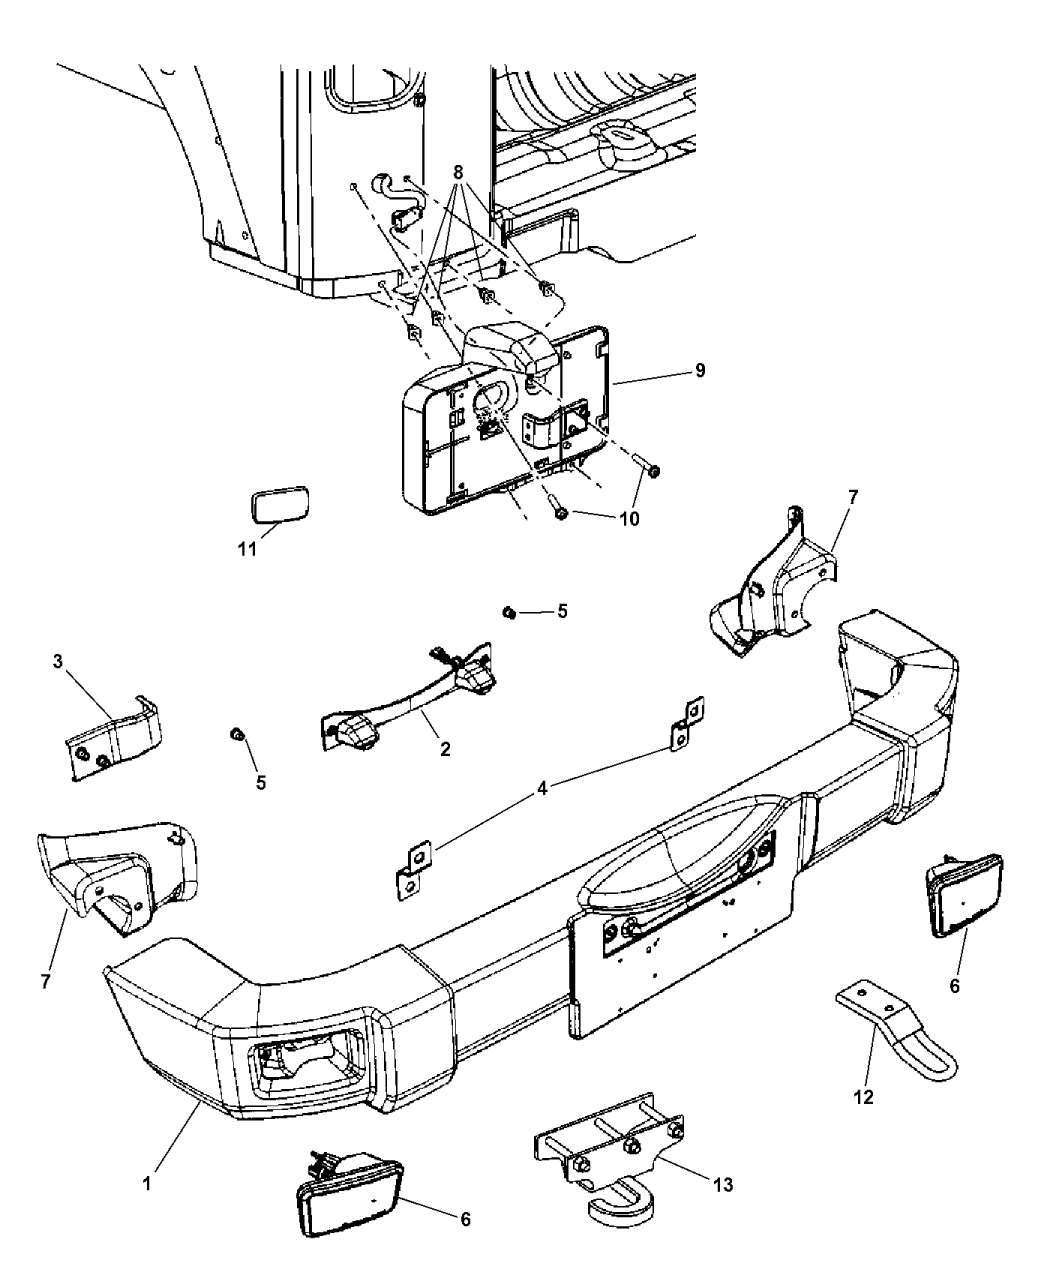 2007 jeep wrangler sahara engine parts diagram  jeep  auto